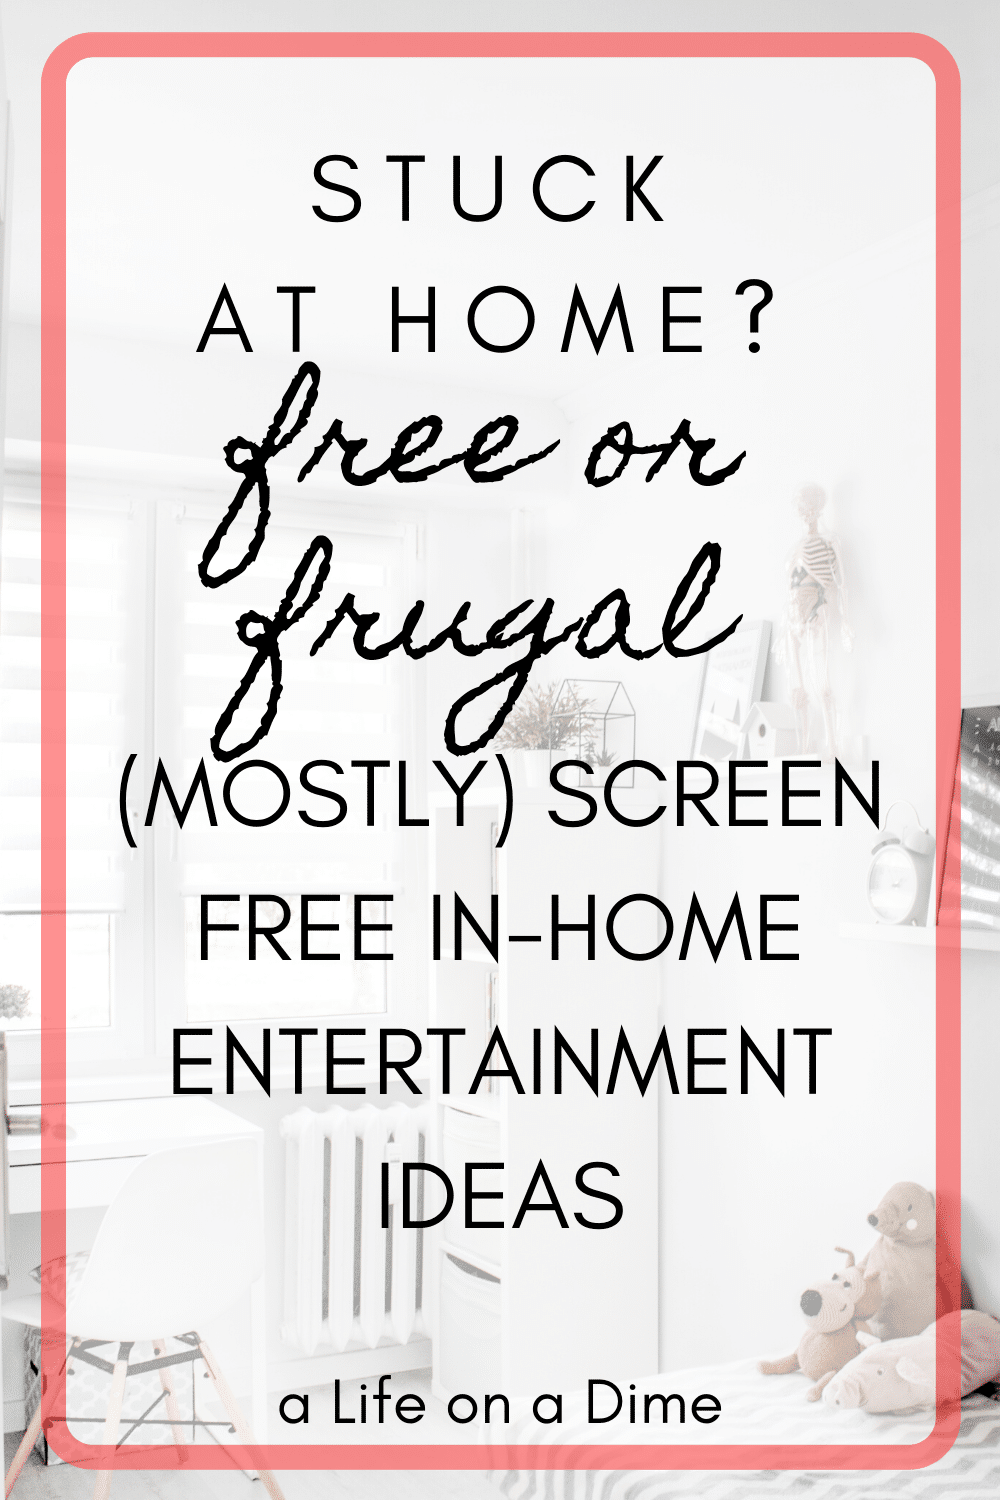 free or frugal in-home entertainment ideas